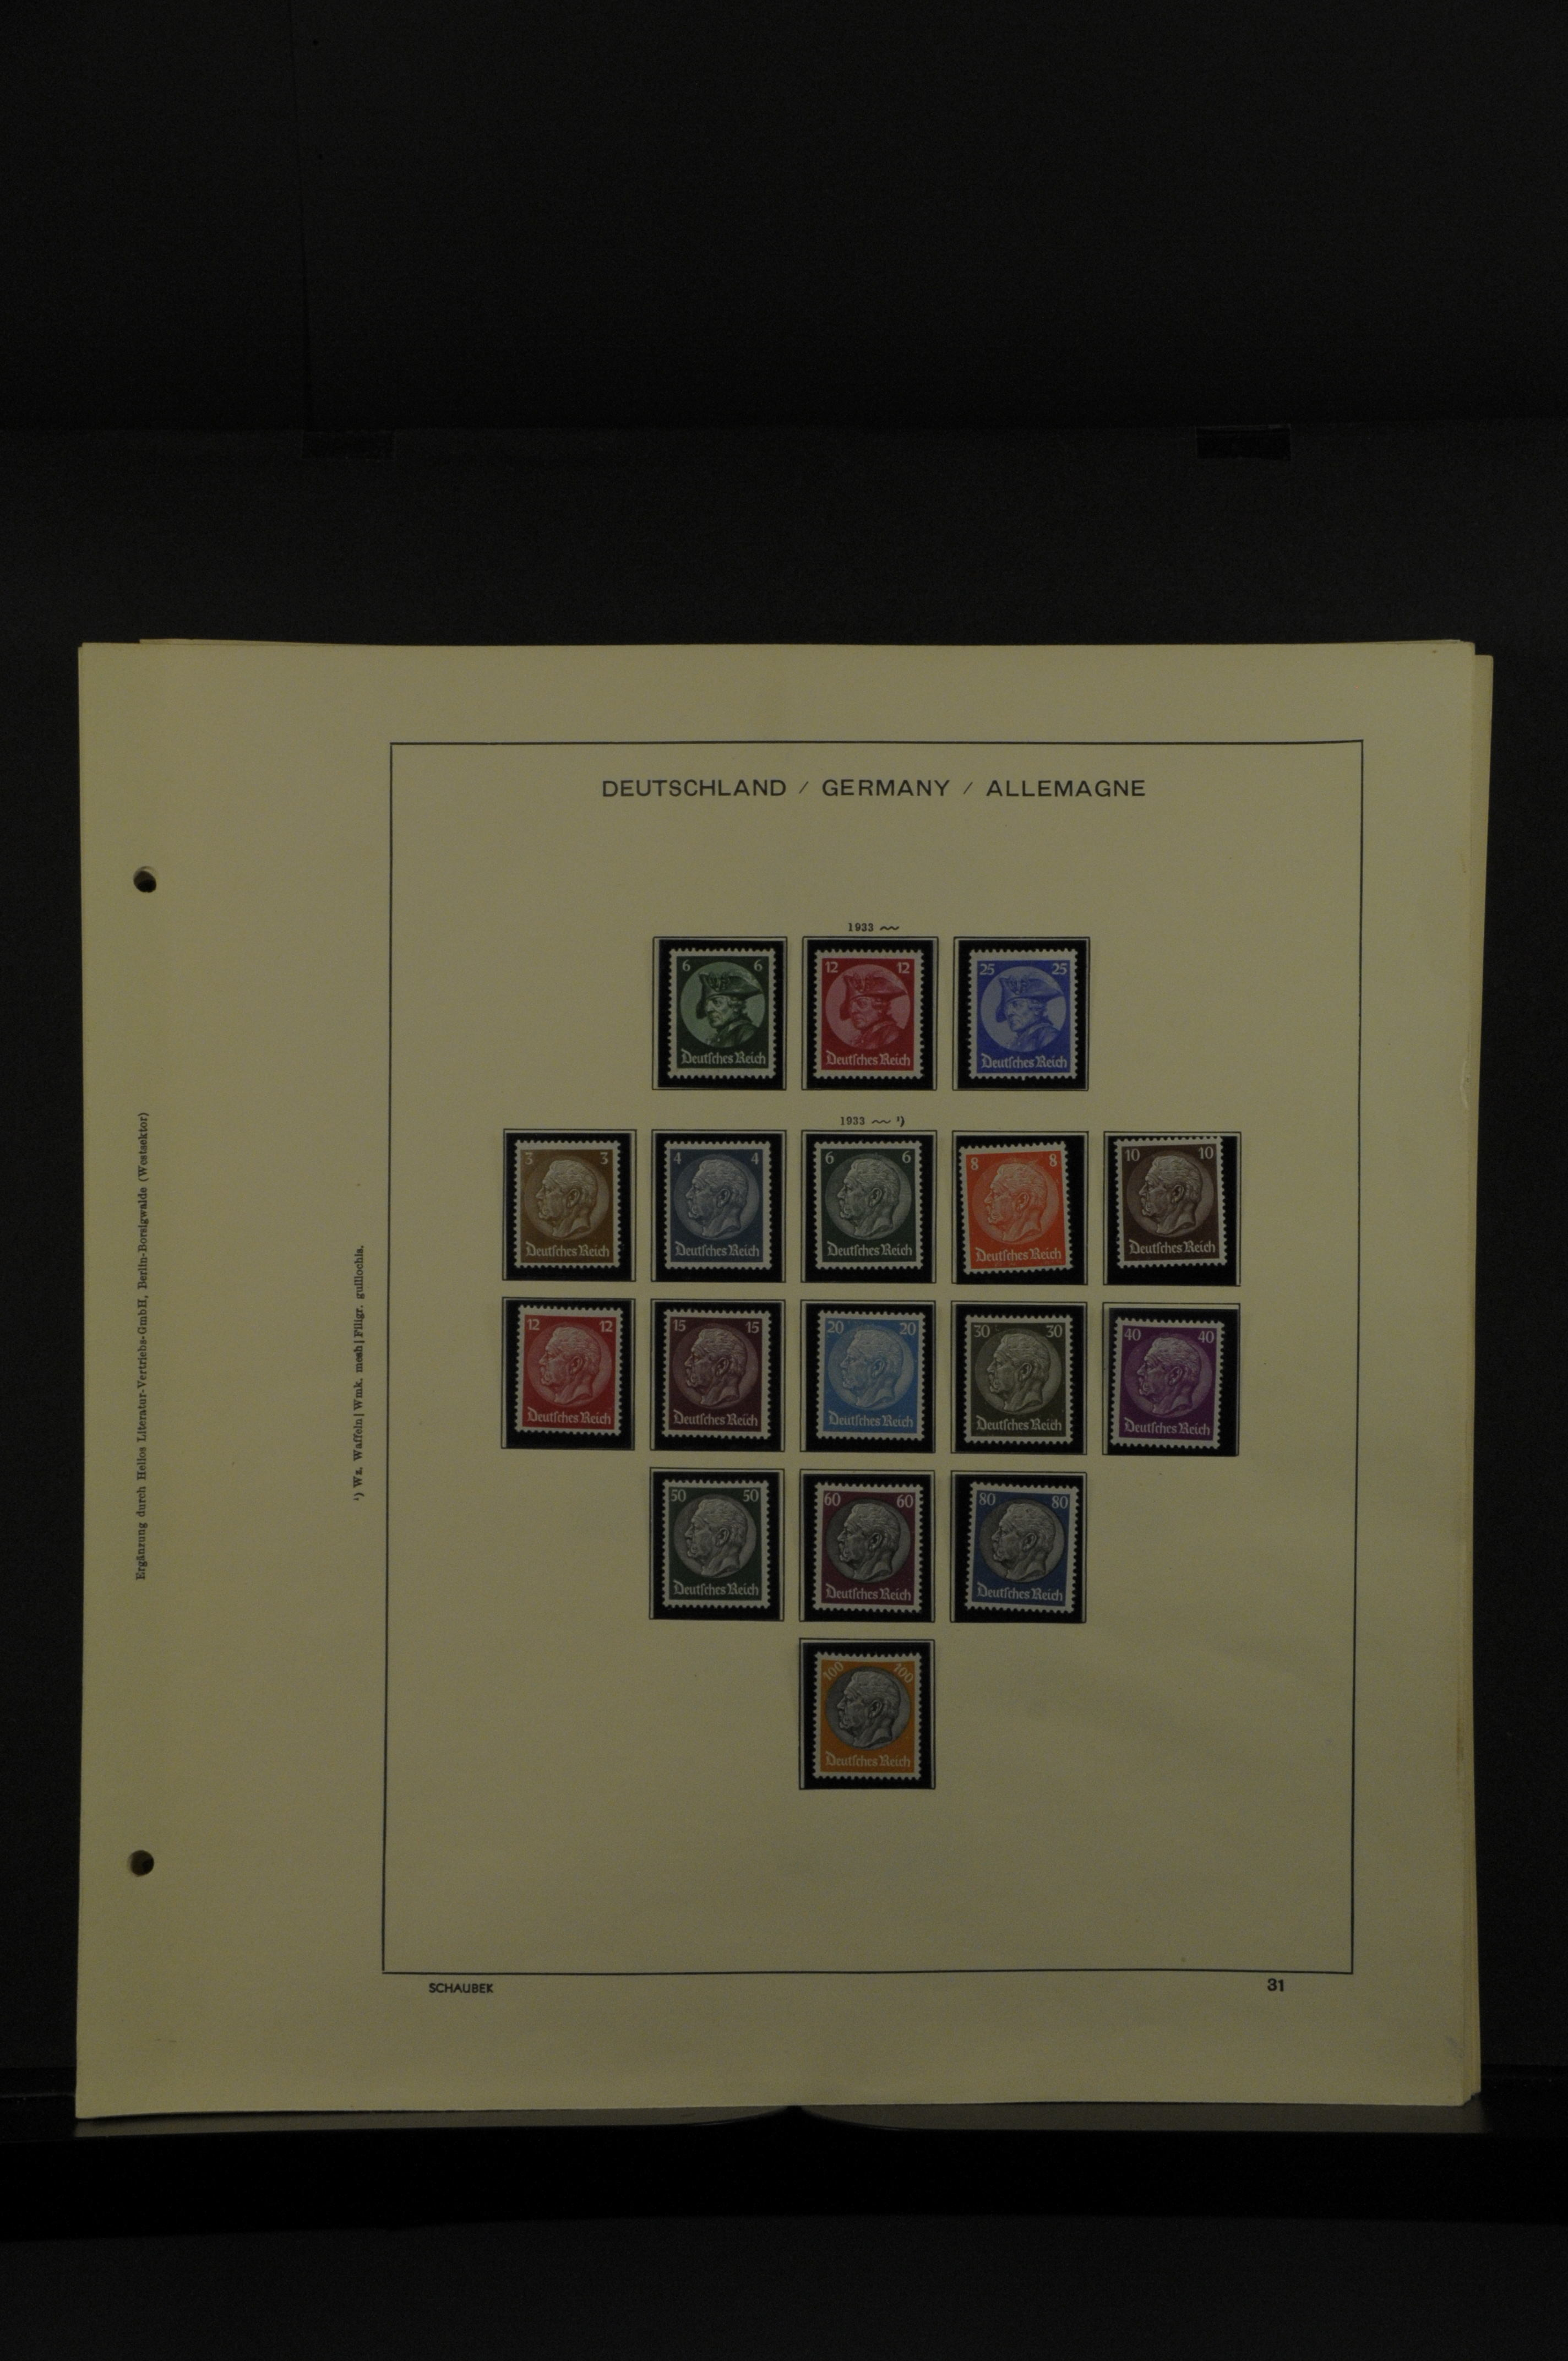 Lot 7929 - Deutsches Reich drittes reich -  Auktionshaus Ulrich Felzmann GmbH & Co. KG Auction 165 | Philately, Airmail, Zeppelinmail and Astrophilately, international,  German and collections.